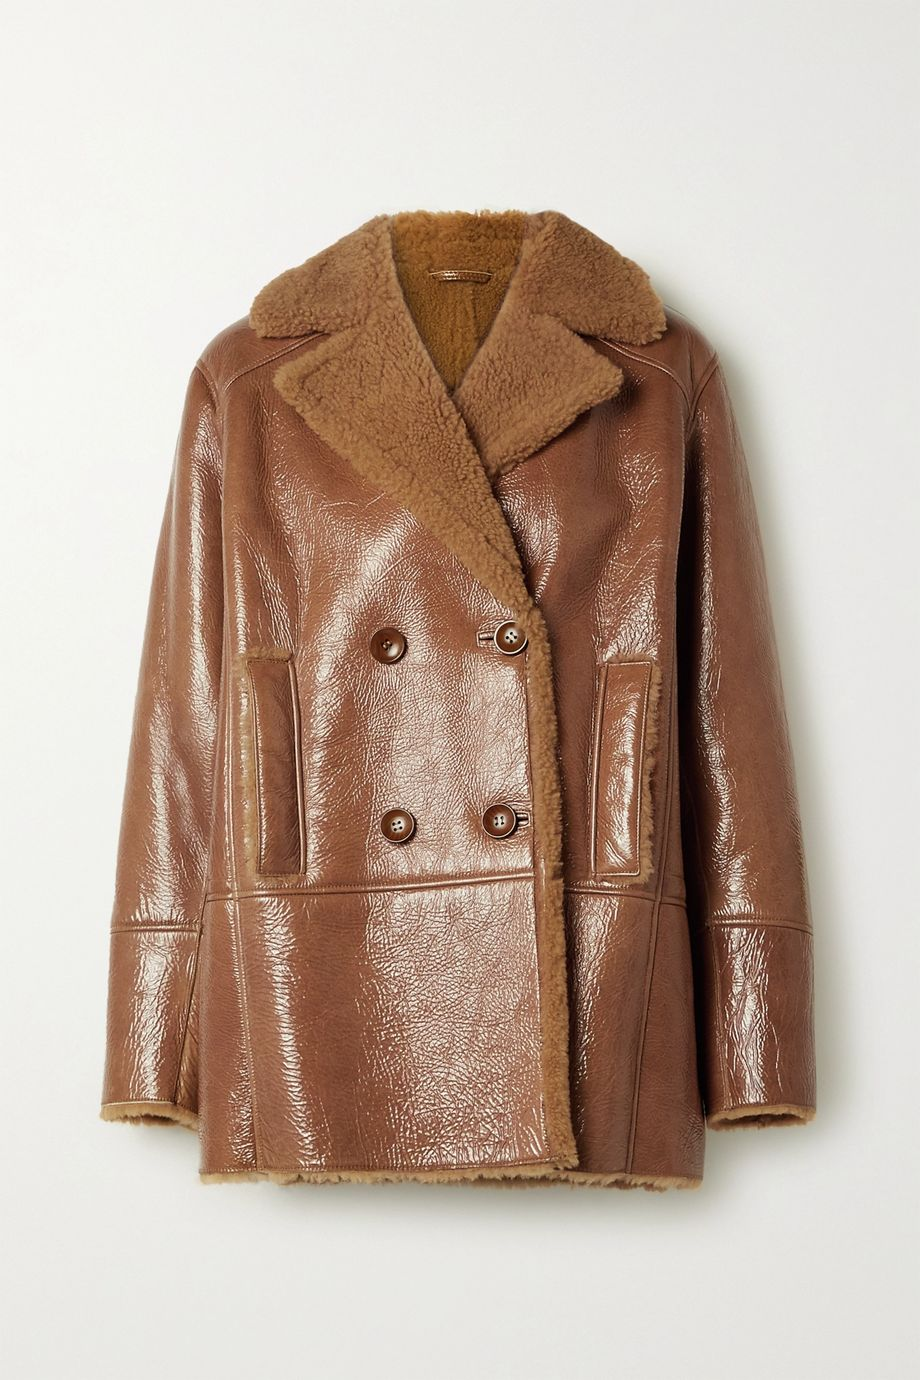 REMAIN Birger Christensen Ray double-breasted shearling-lined glossed textured-leather jacket